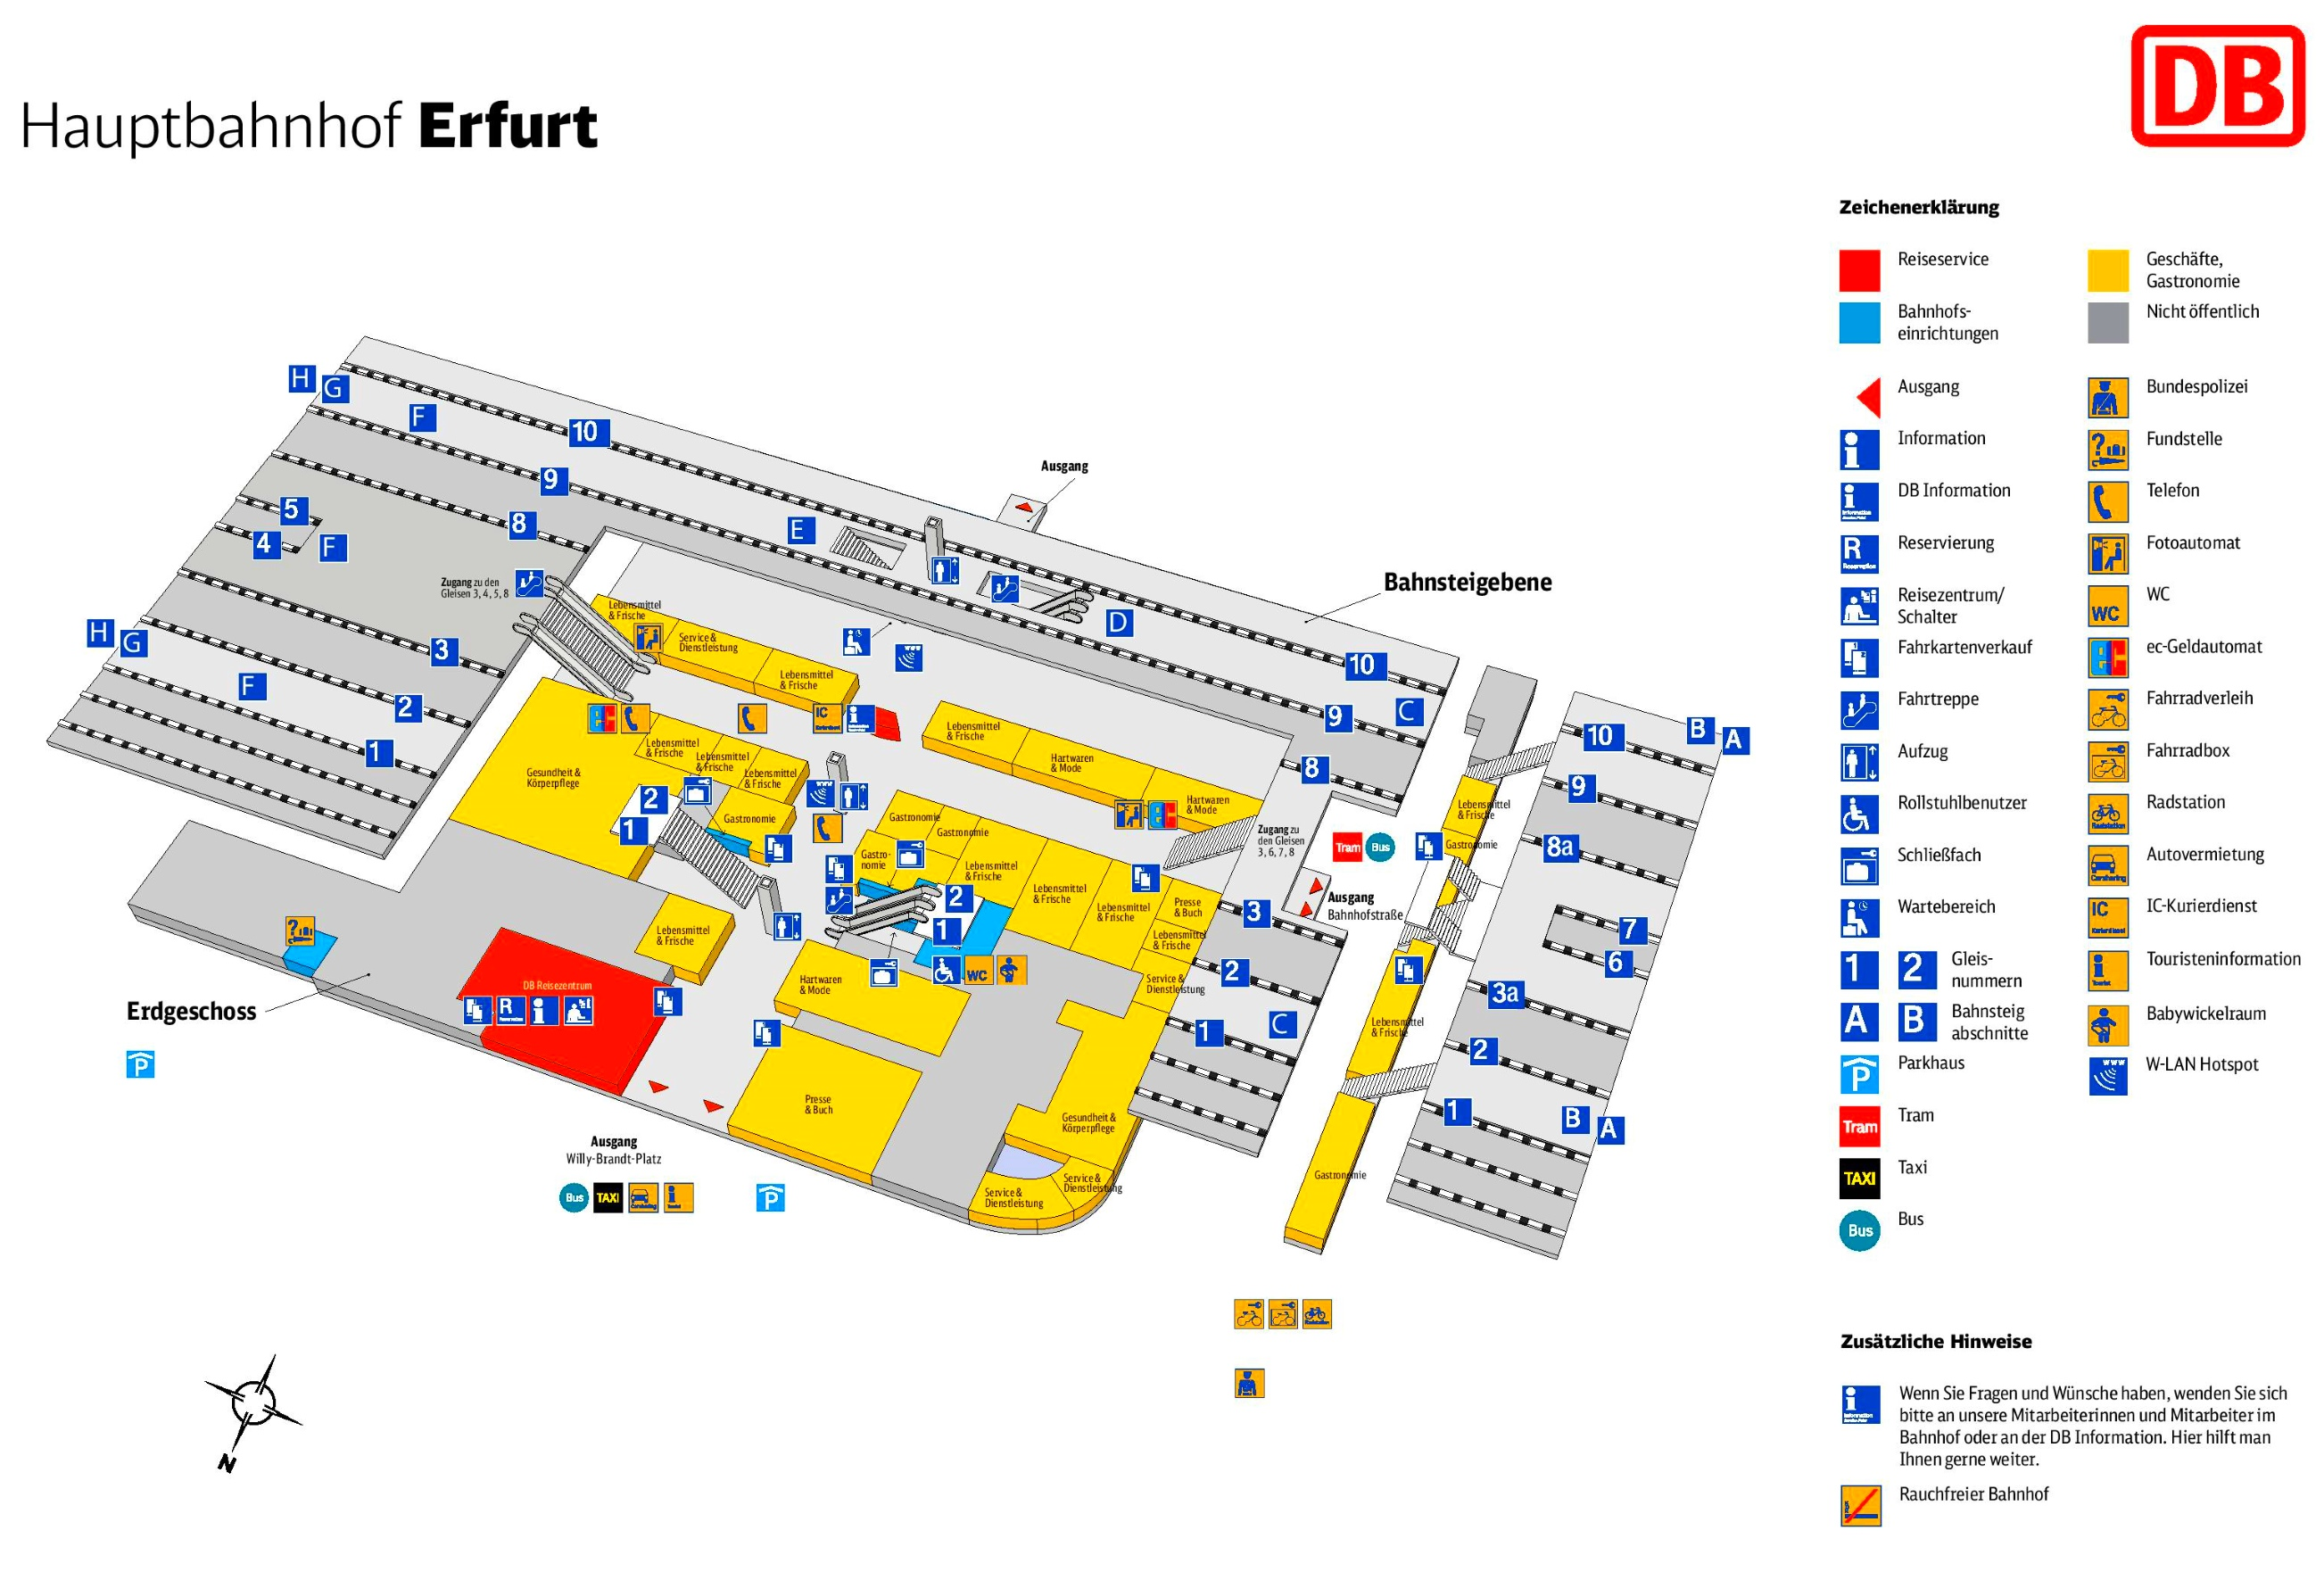 erfurt hauptbahnhof map. Black Bedroom Furniture Sets. Home Design Ideas